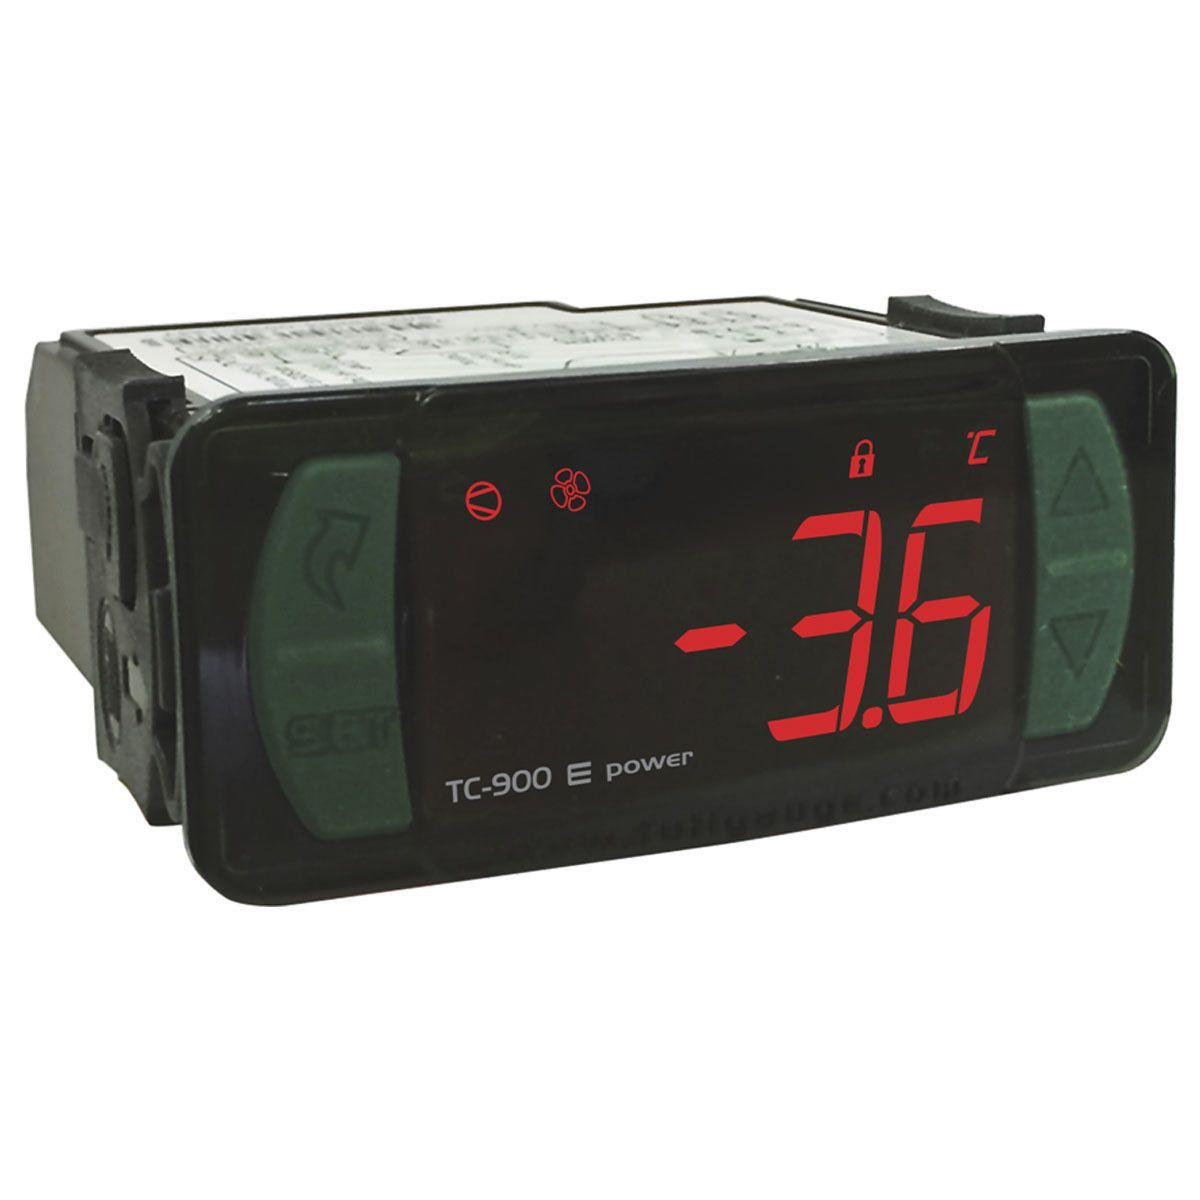 CONTROLADOR TC900E POWER 06 BIVOLT FULL GAUGE